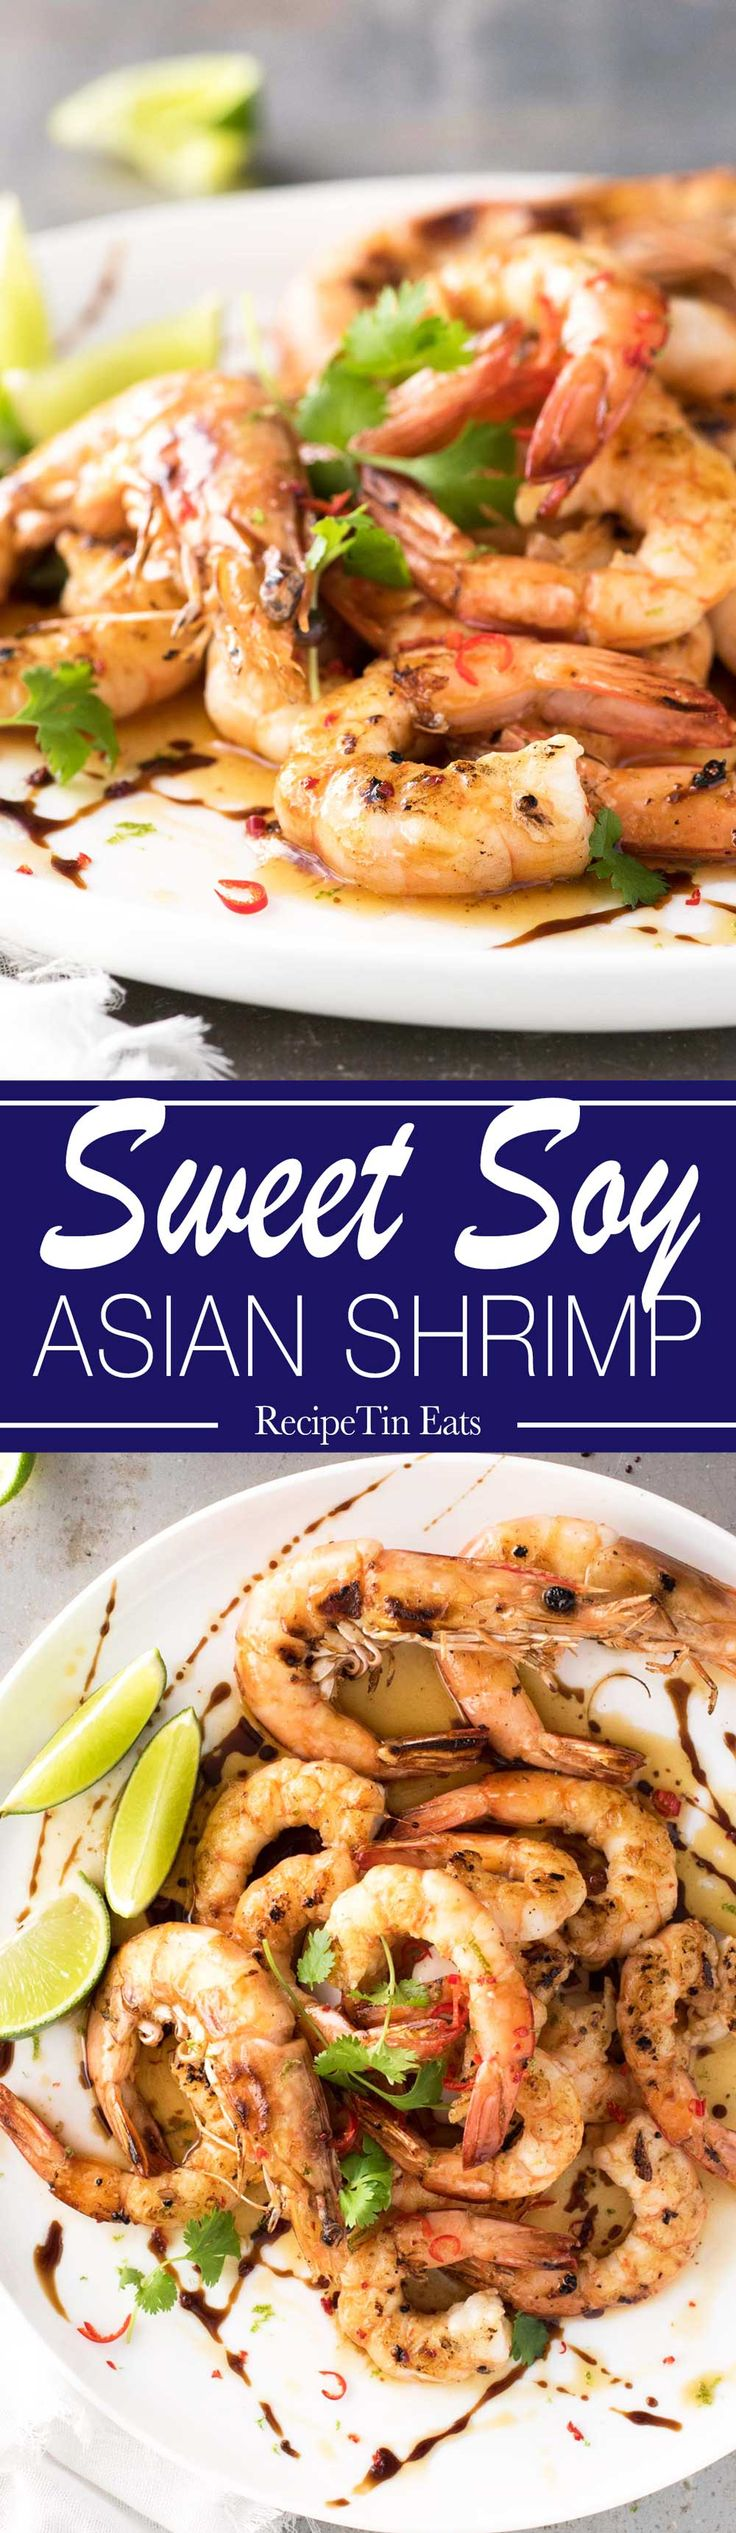 Sweet Soy Asian Shrimp | These are AMAZING!!! Browned butter with sweet soy is a KILLER COMBO!!!